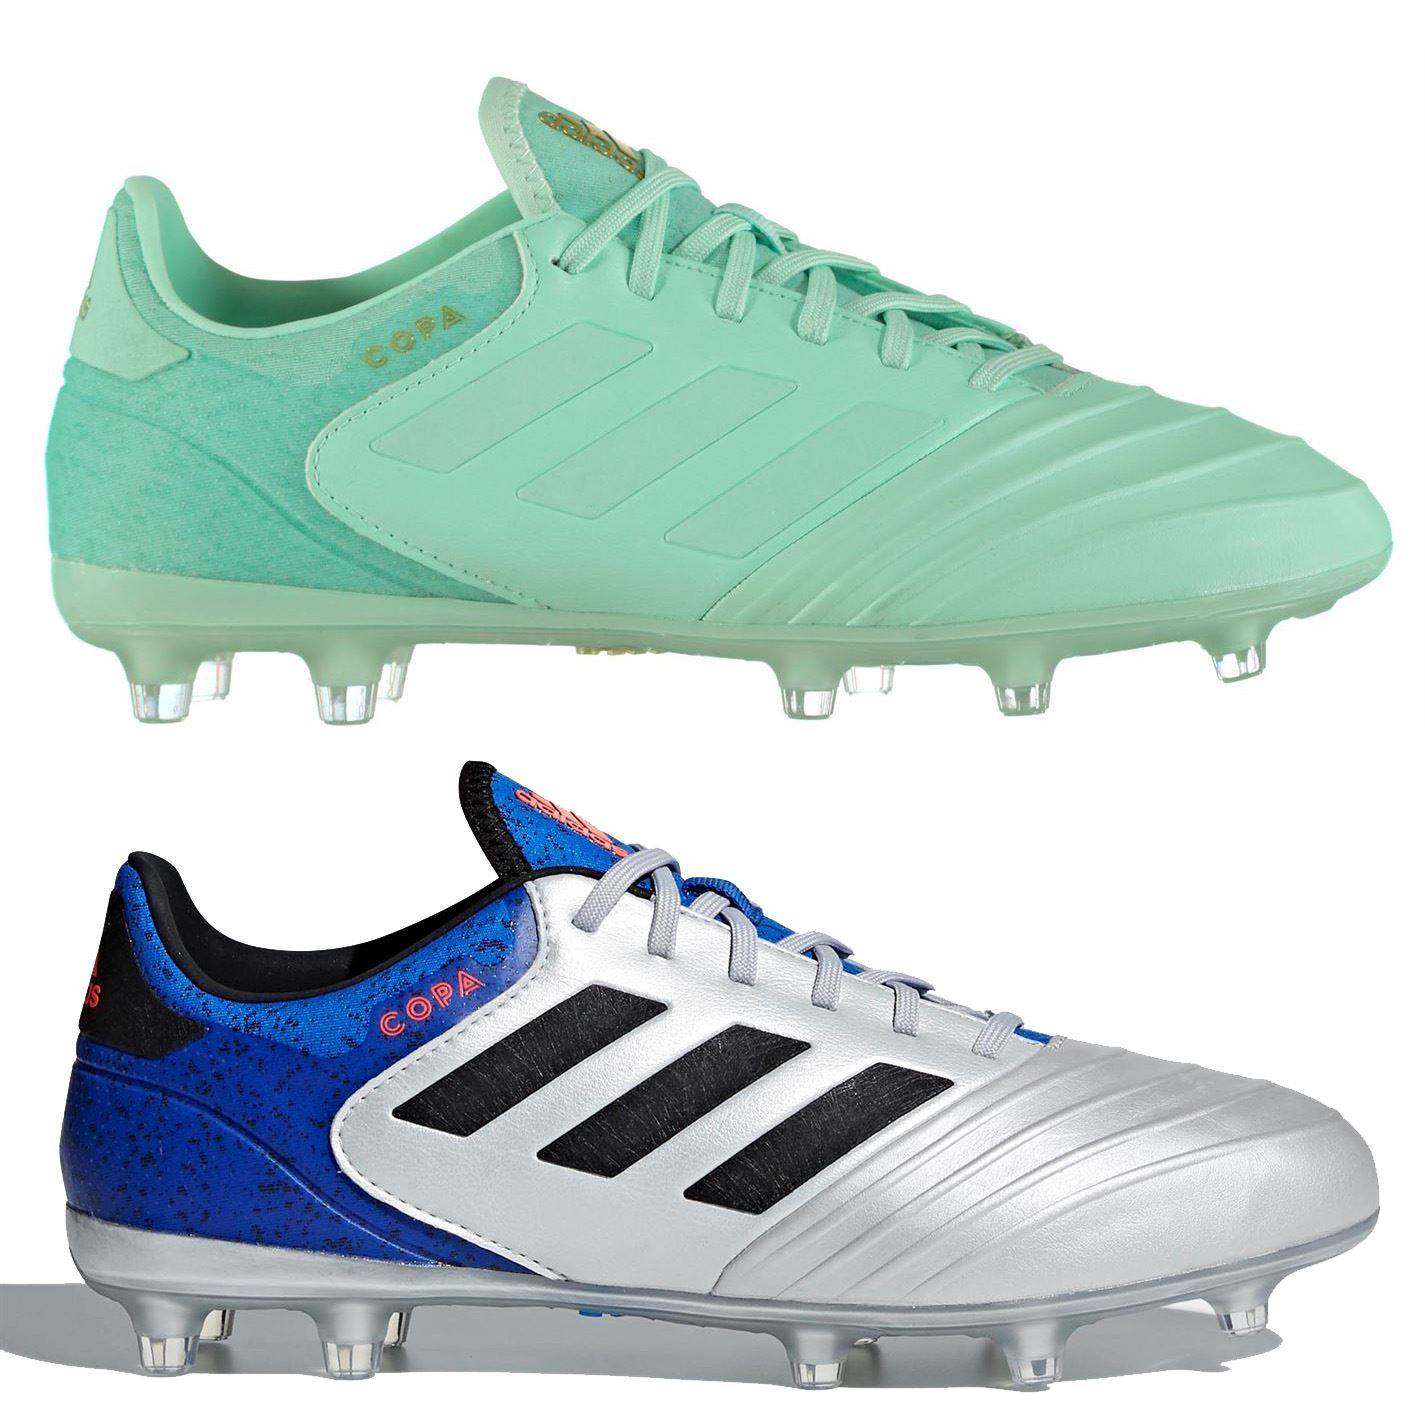 ... adidas Copa 18.2 FG Firm Ground Football Boots Mens Soccer Shoes Cleats  ... 7eb7342d398